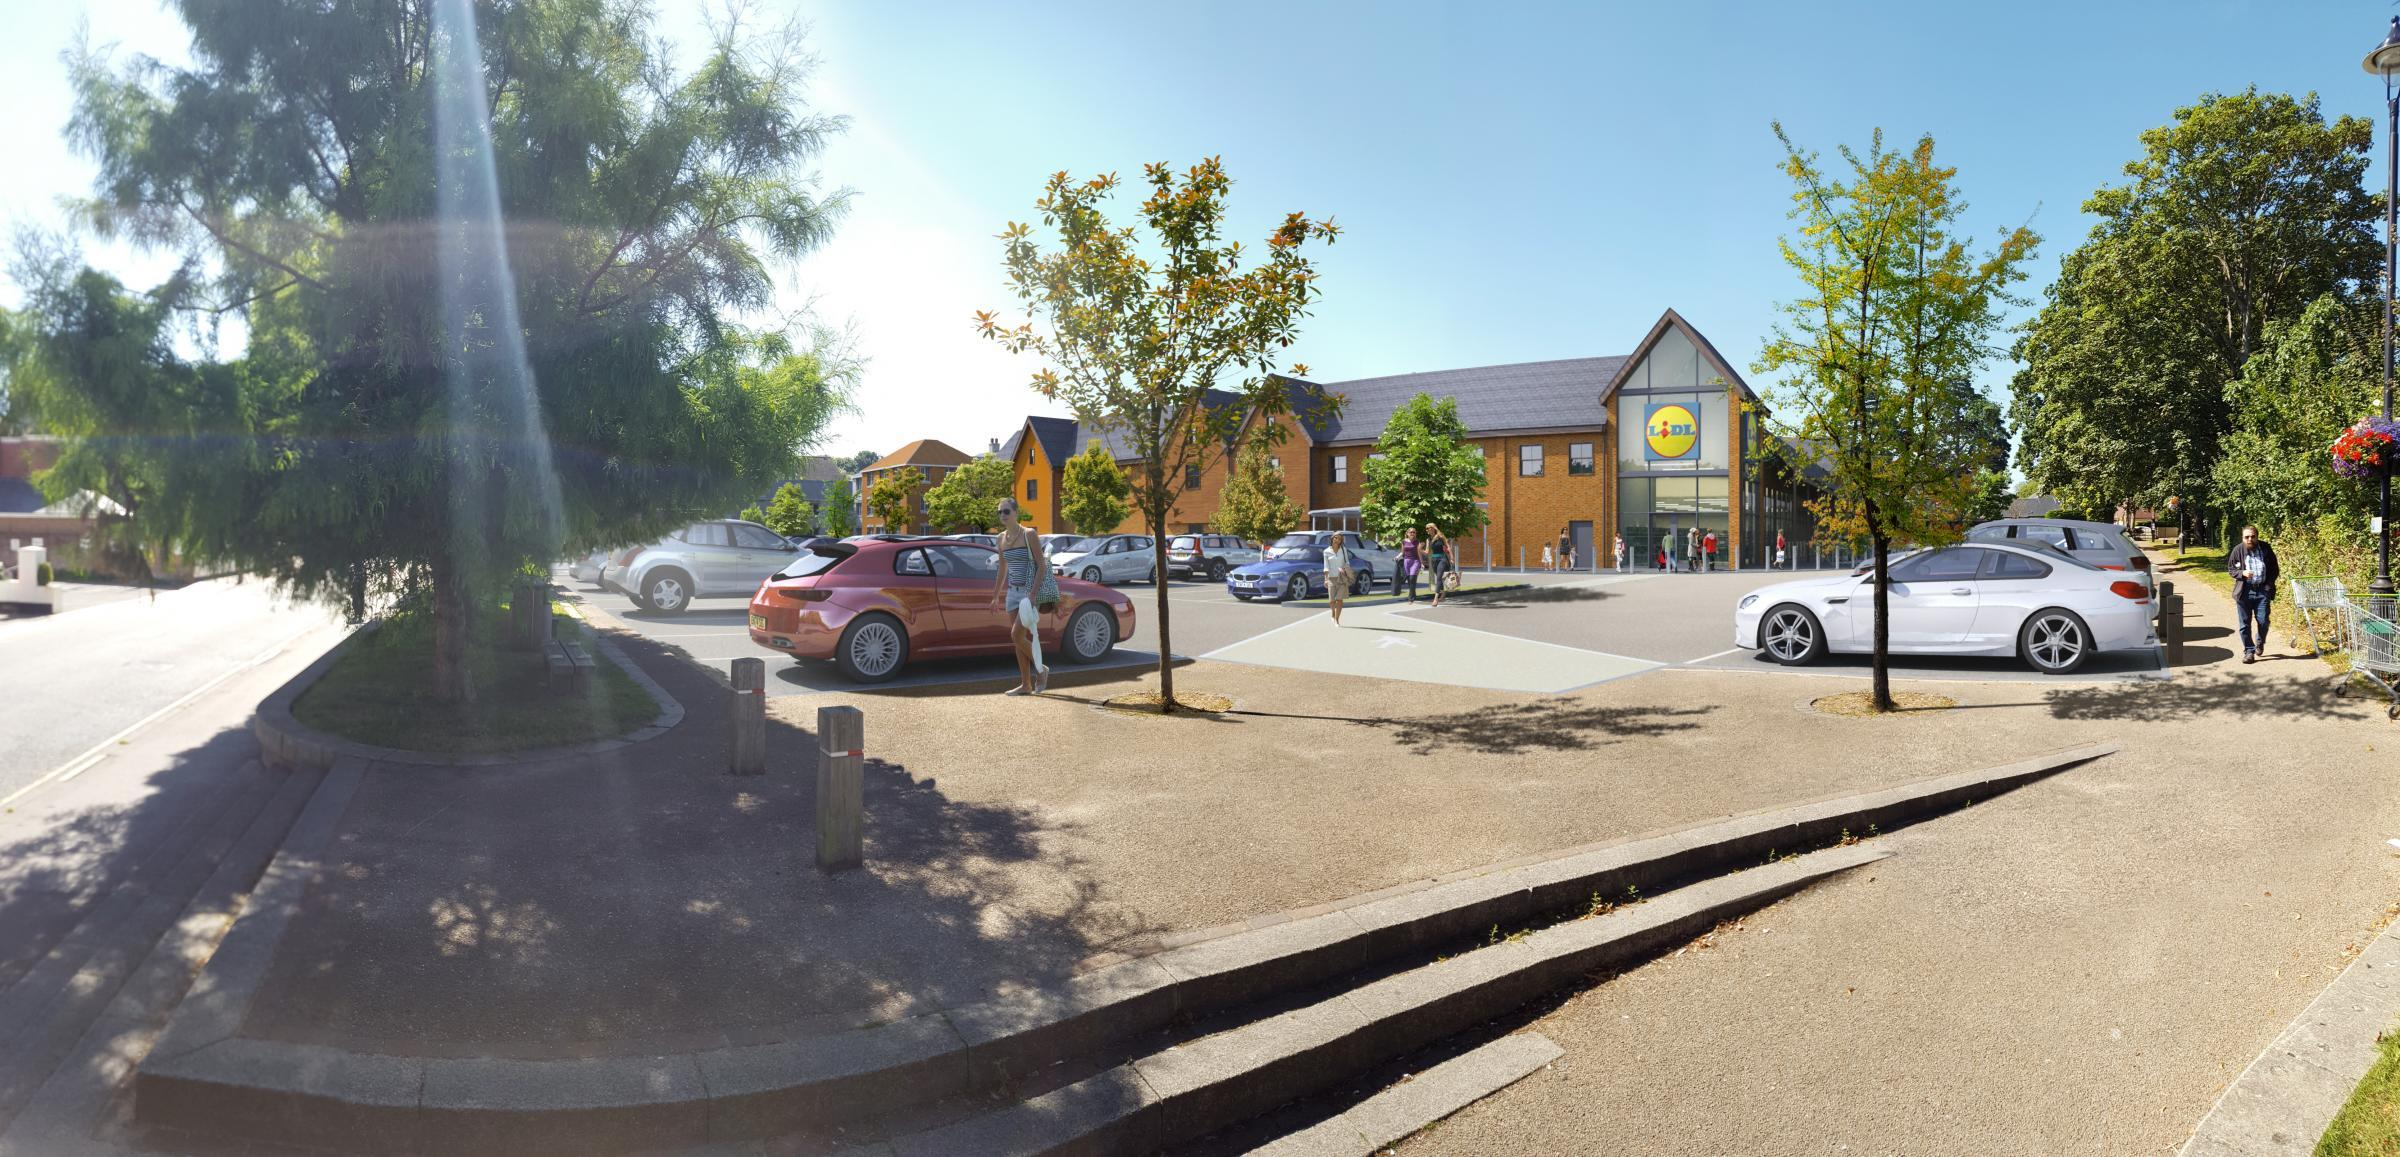 An artist's impression of the new Lidl store due to open in Hythe next year.